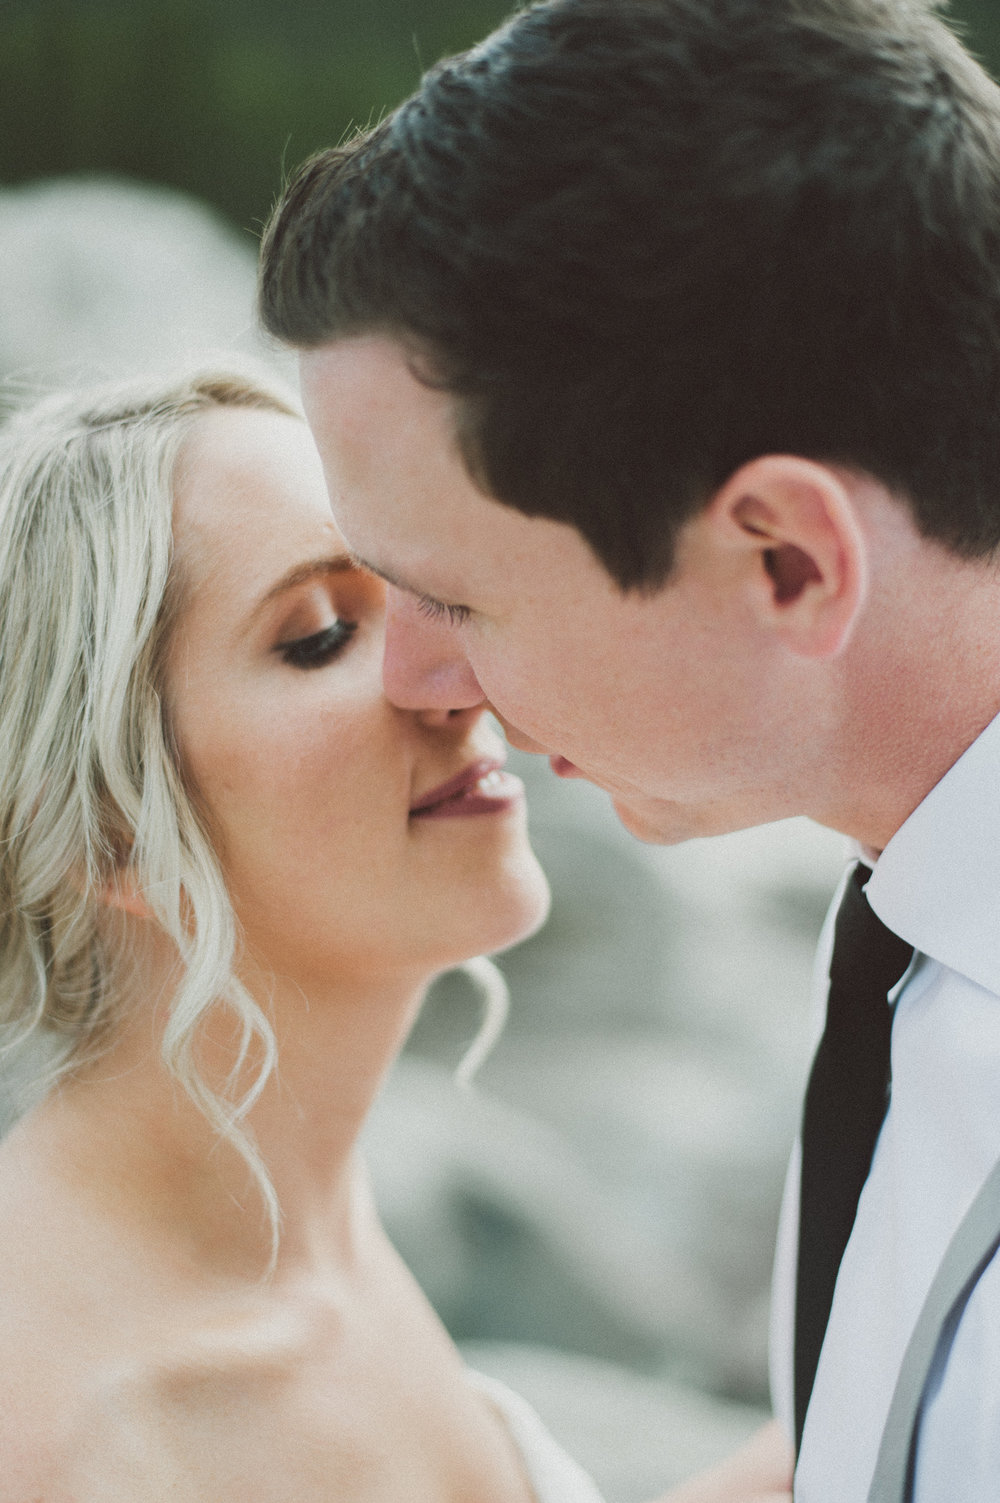 Rocky Mountain Banff Calgary Alberta Wedding-Jessika Hunter Photo-102.JPG